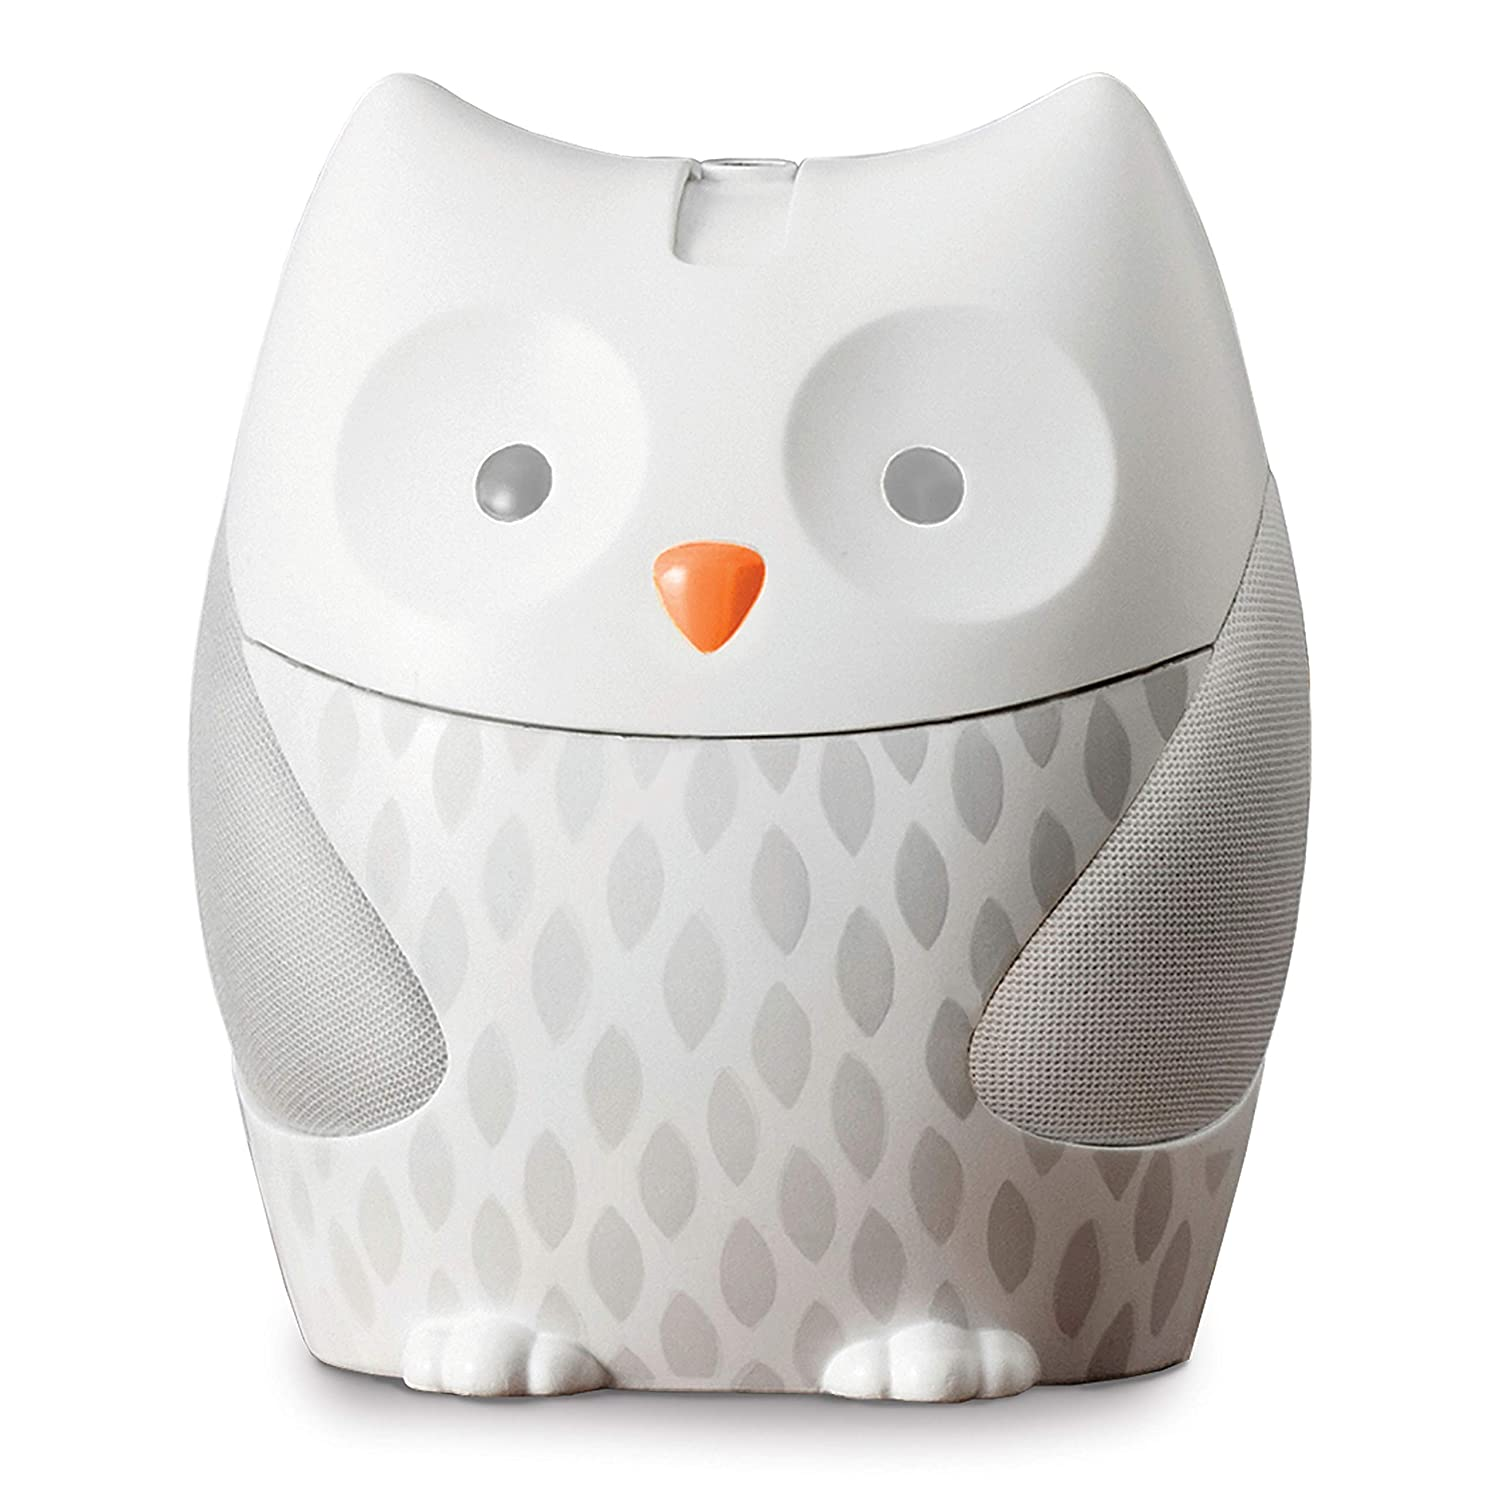 Skip Hop Baby Sound Machine Soother and Night Light: Moonlight & Melodies, Owl bedtime routine for babies Bedtime routine for babies – the ultimate guide, hack, and gadgets 81B5vcEDmcL